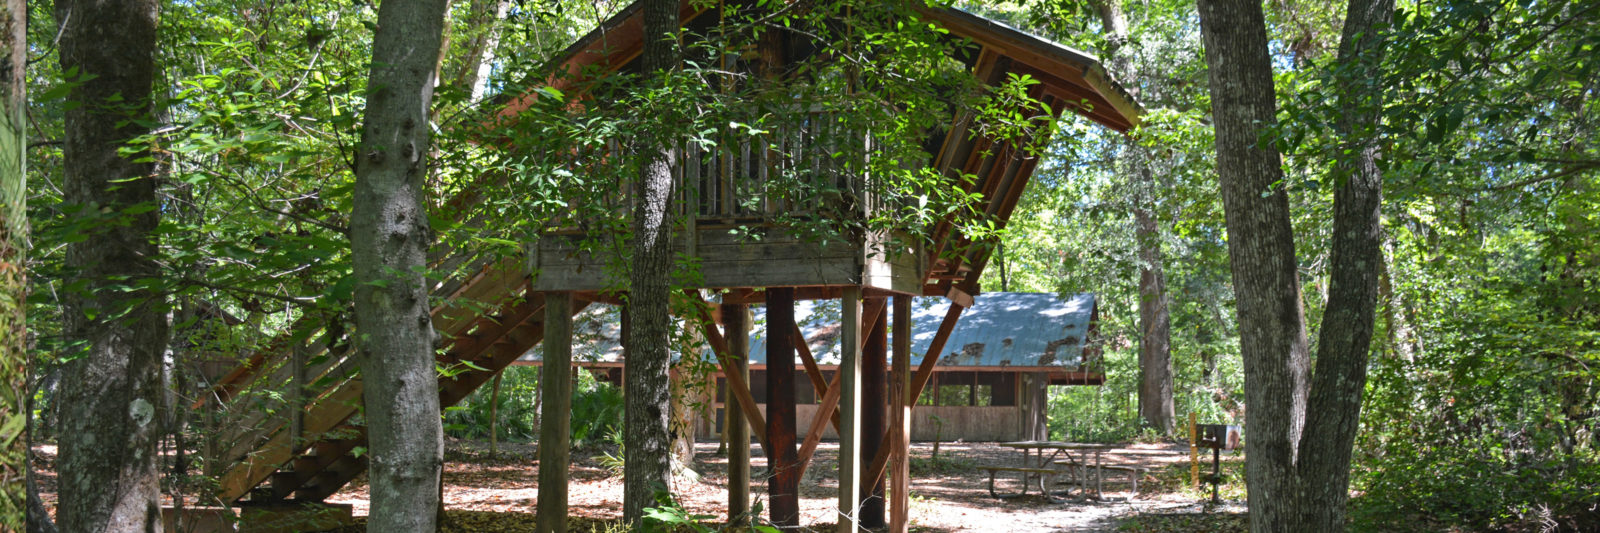 Treehouse at Camp Chowenwaw